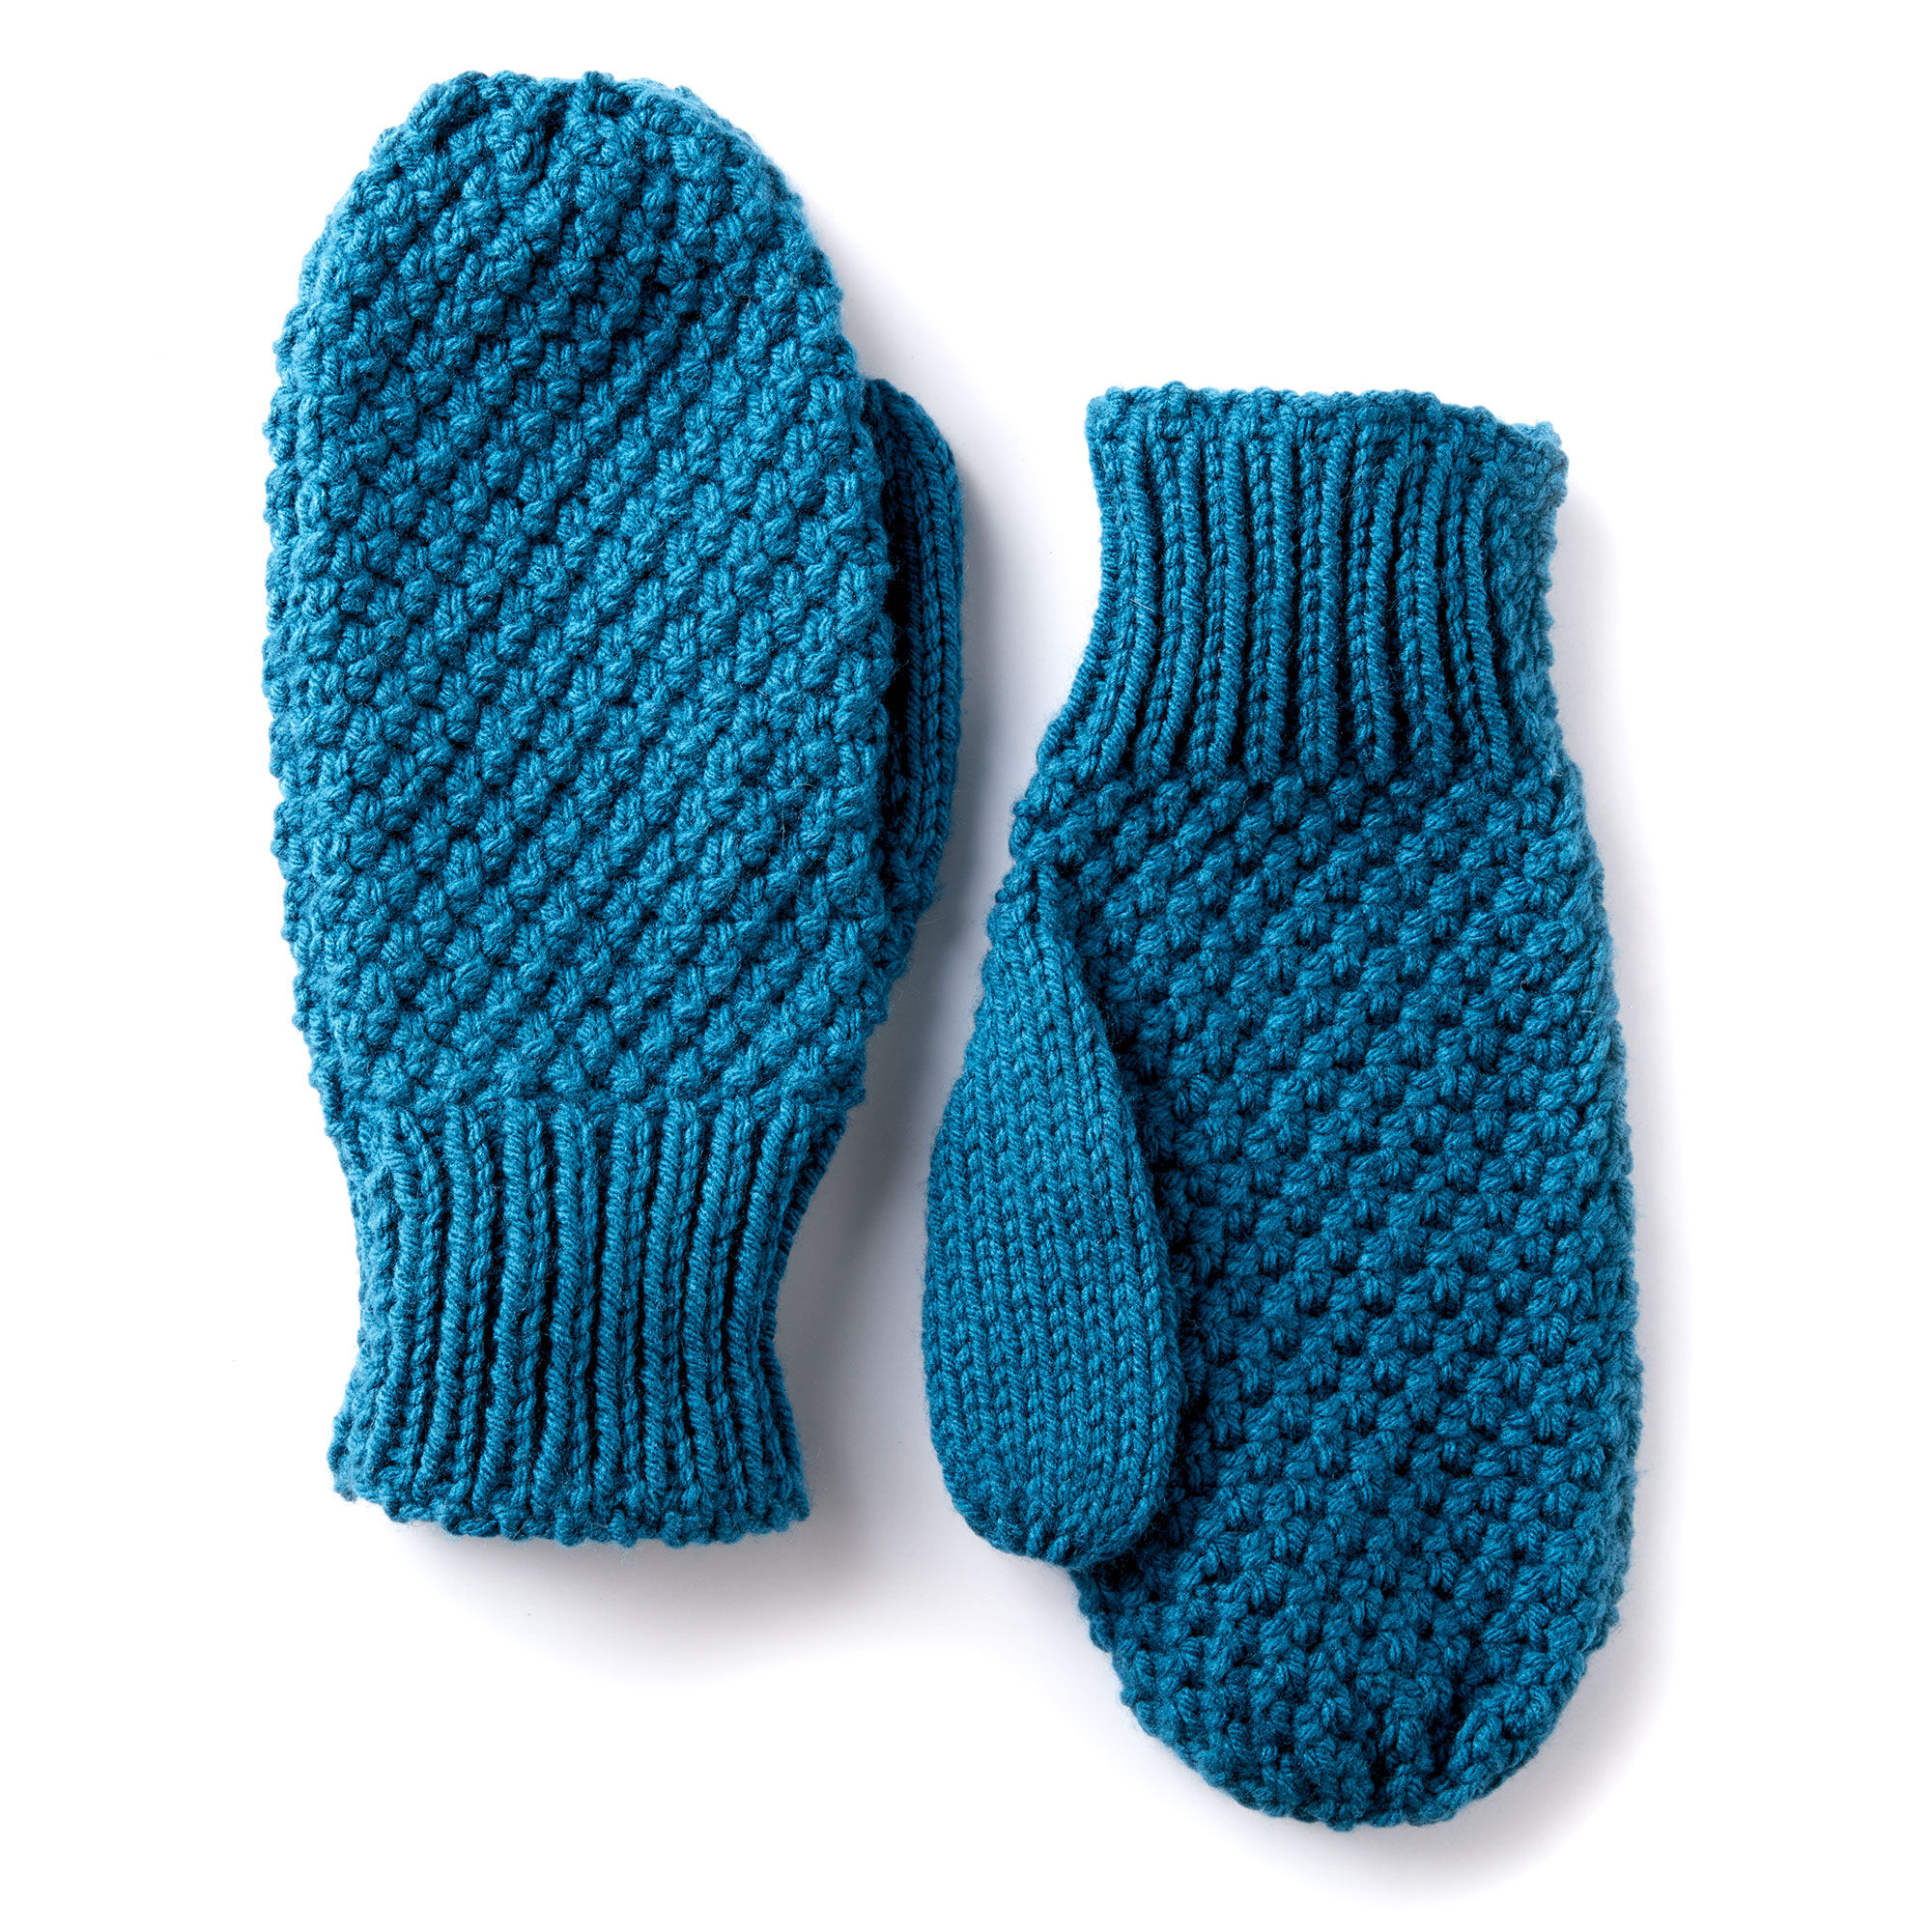 Caron Textured Family Knit Mittens | Yarnspirations